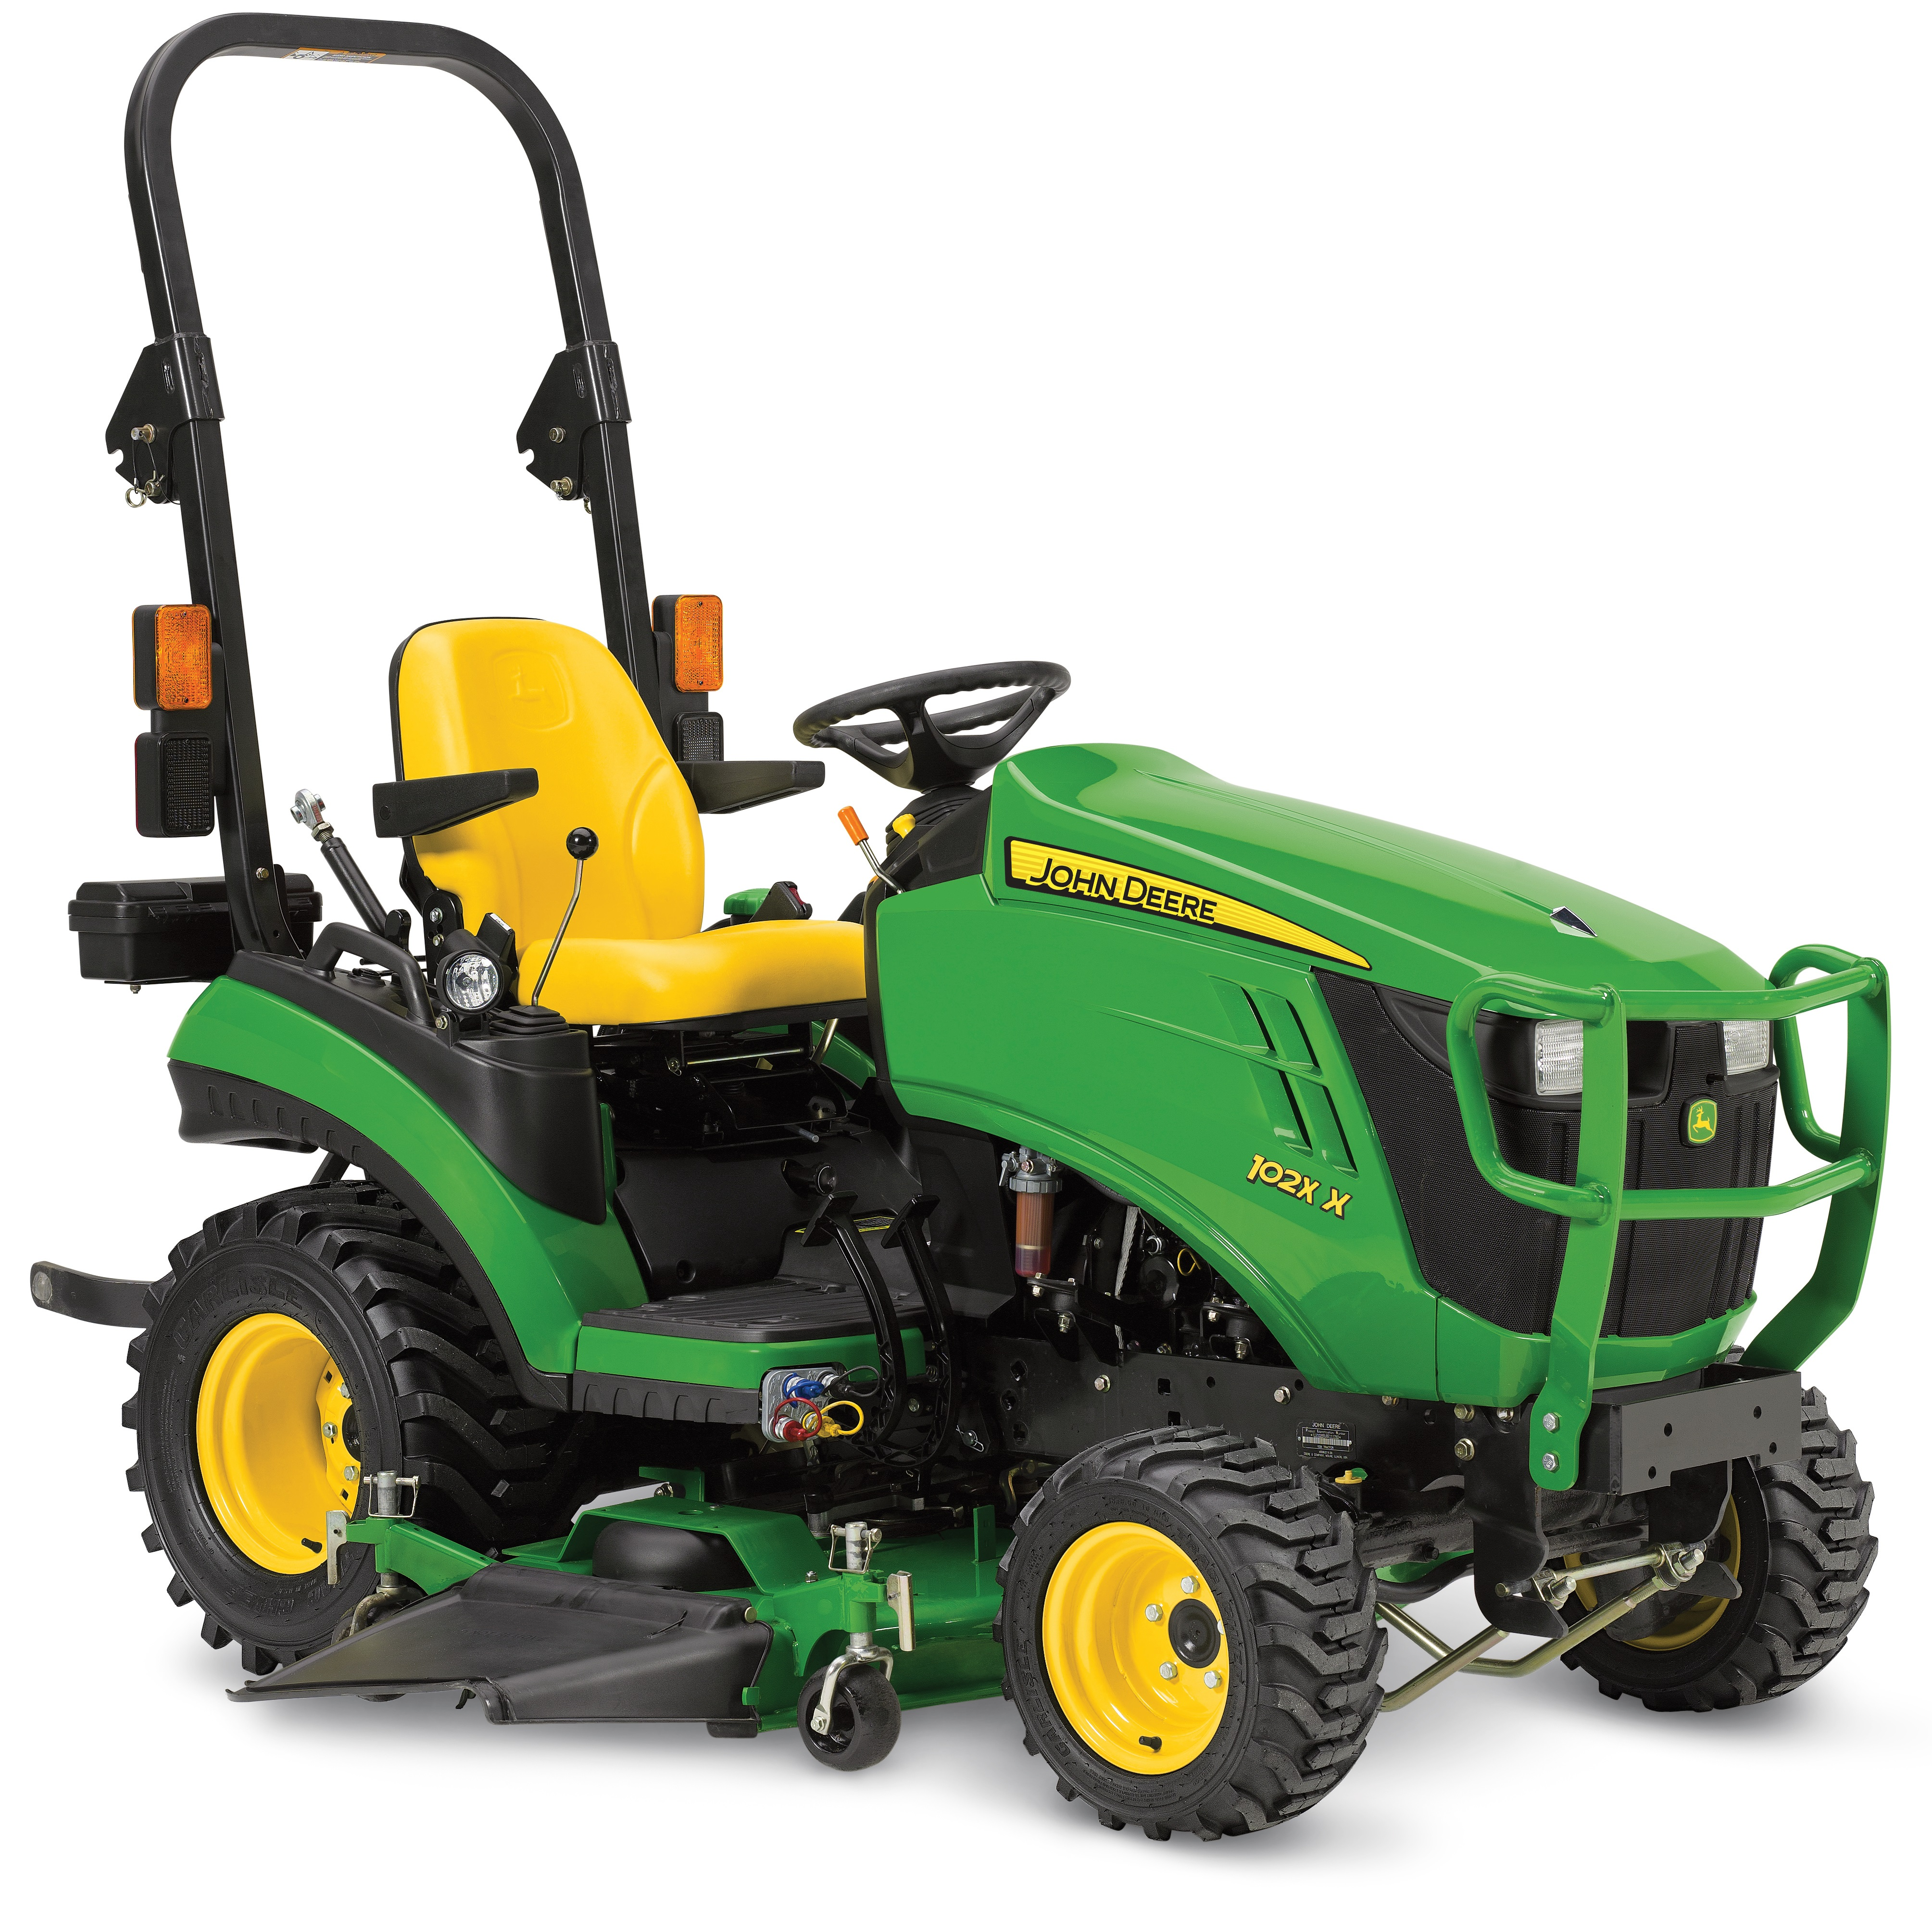 John Deere Compact Tractor Attachments : Deere company john limited — selected e